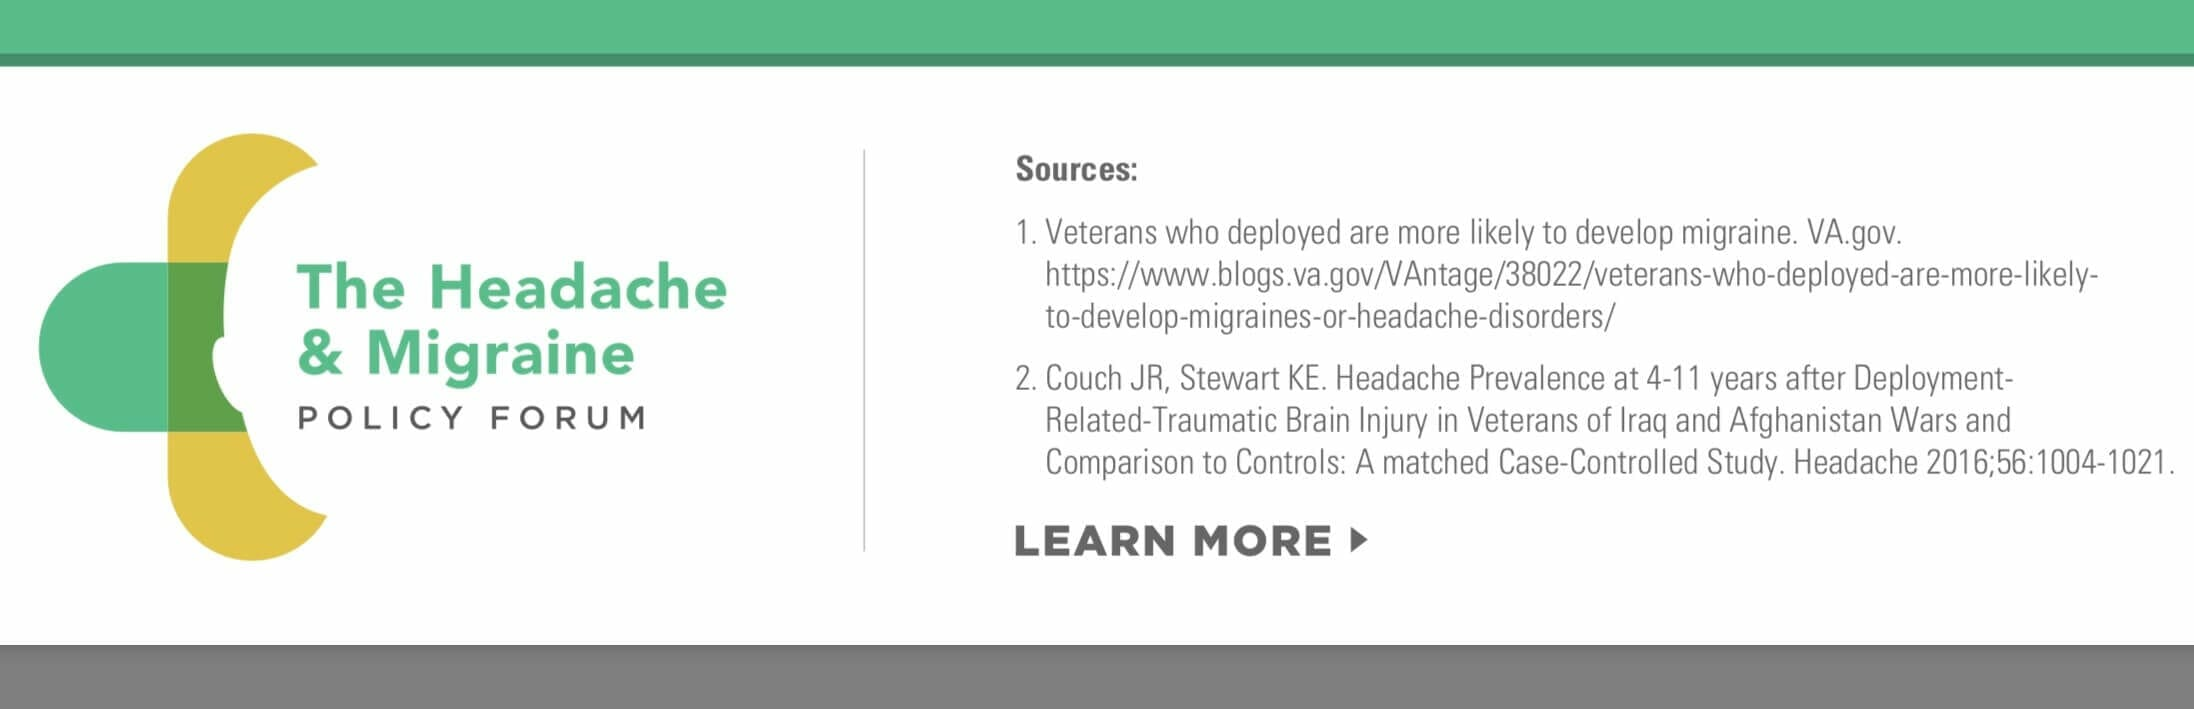 Veterans with Headache Diseases from the headache and migraine policy forum